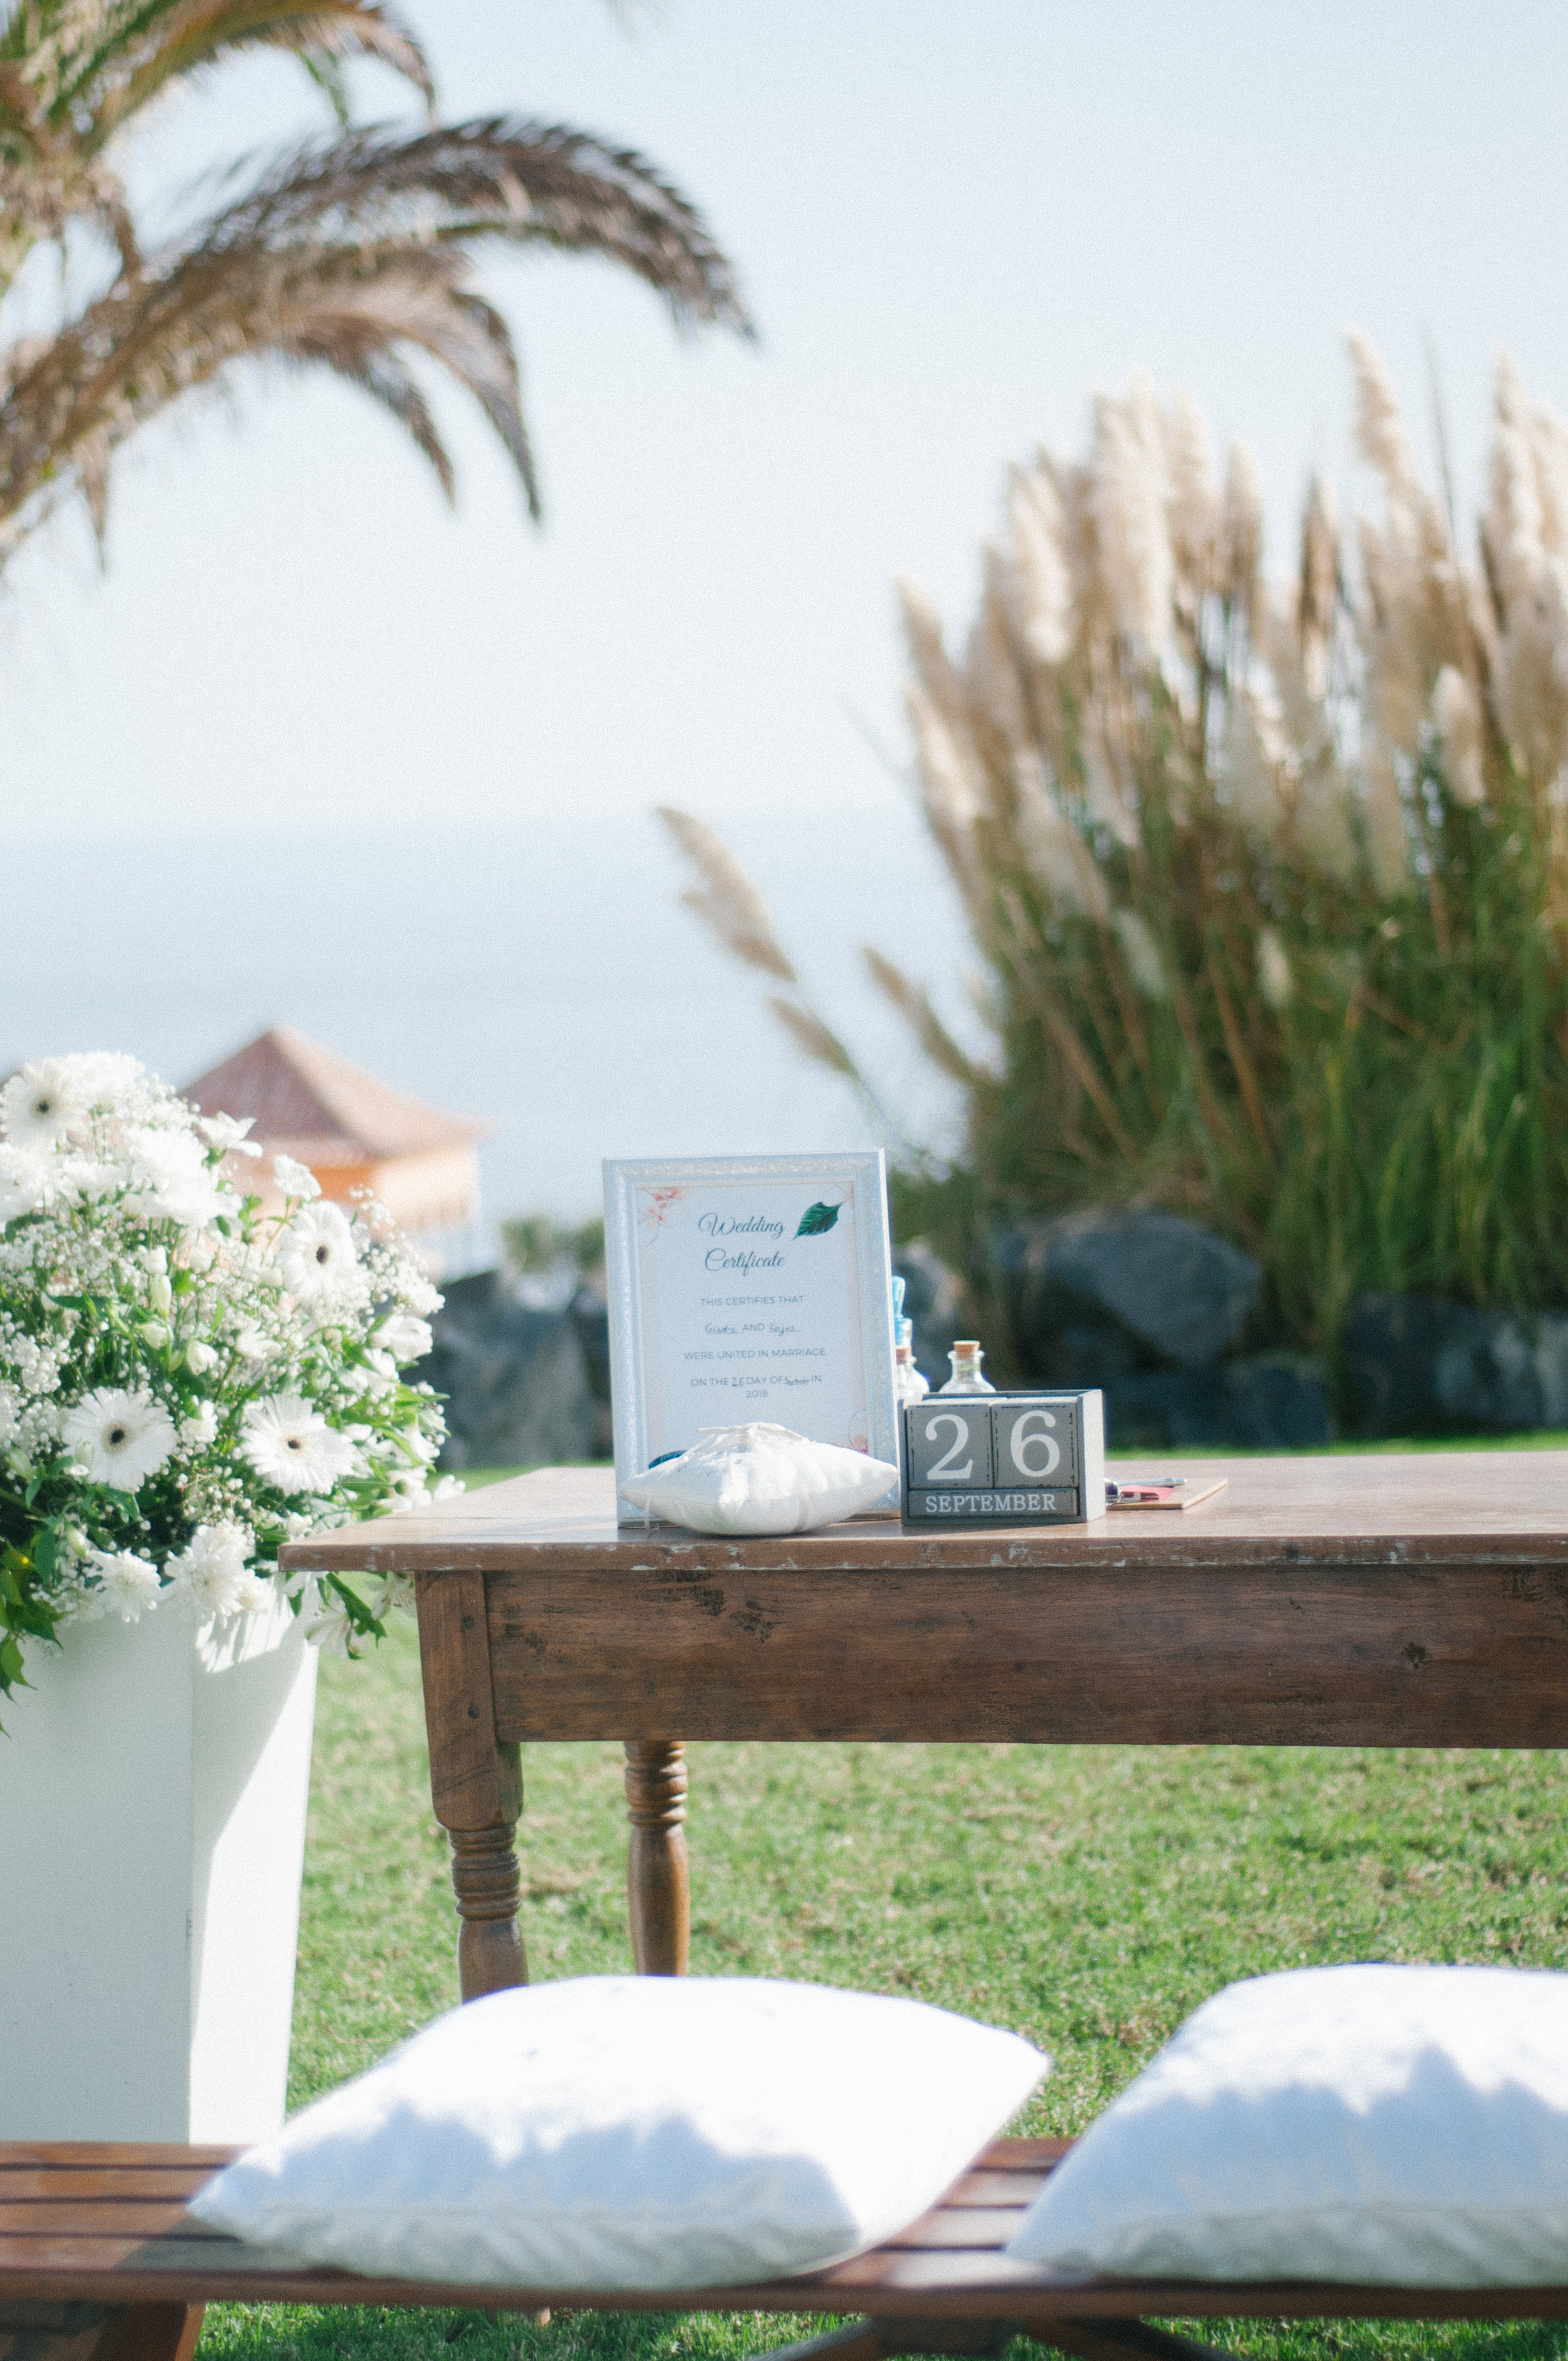 Flowes (as can be seen on the left) included in ceremony set up price